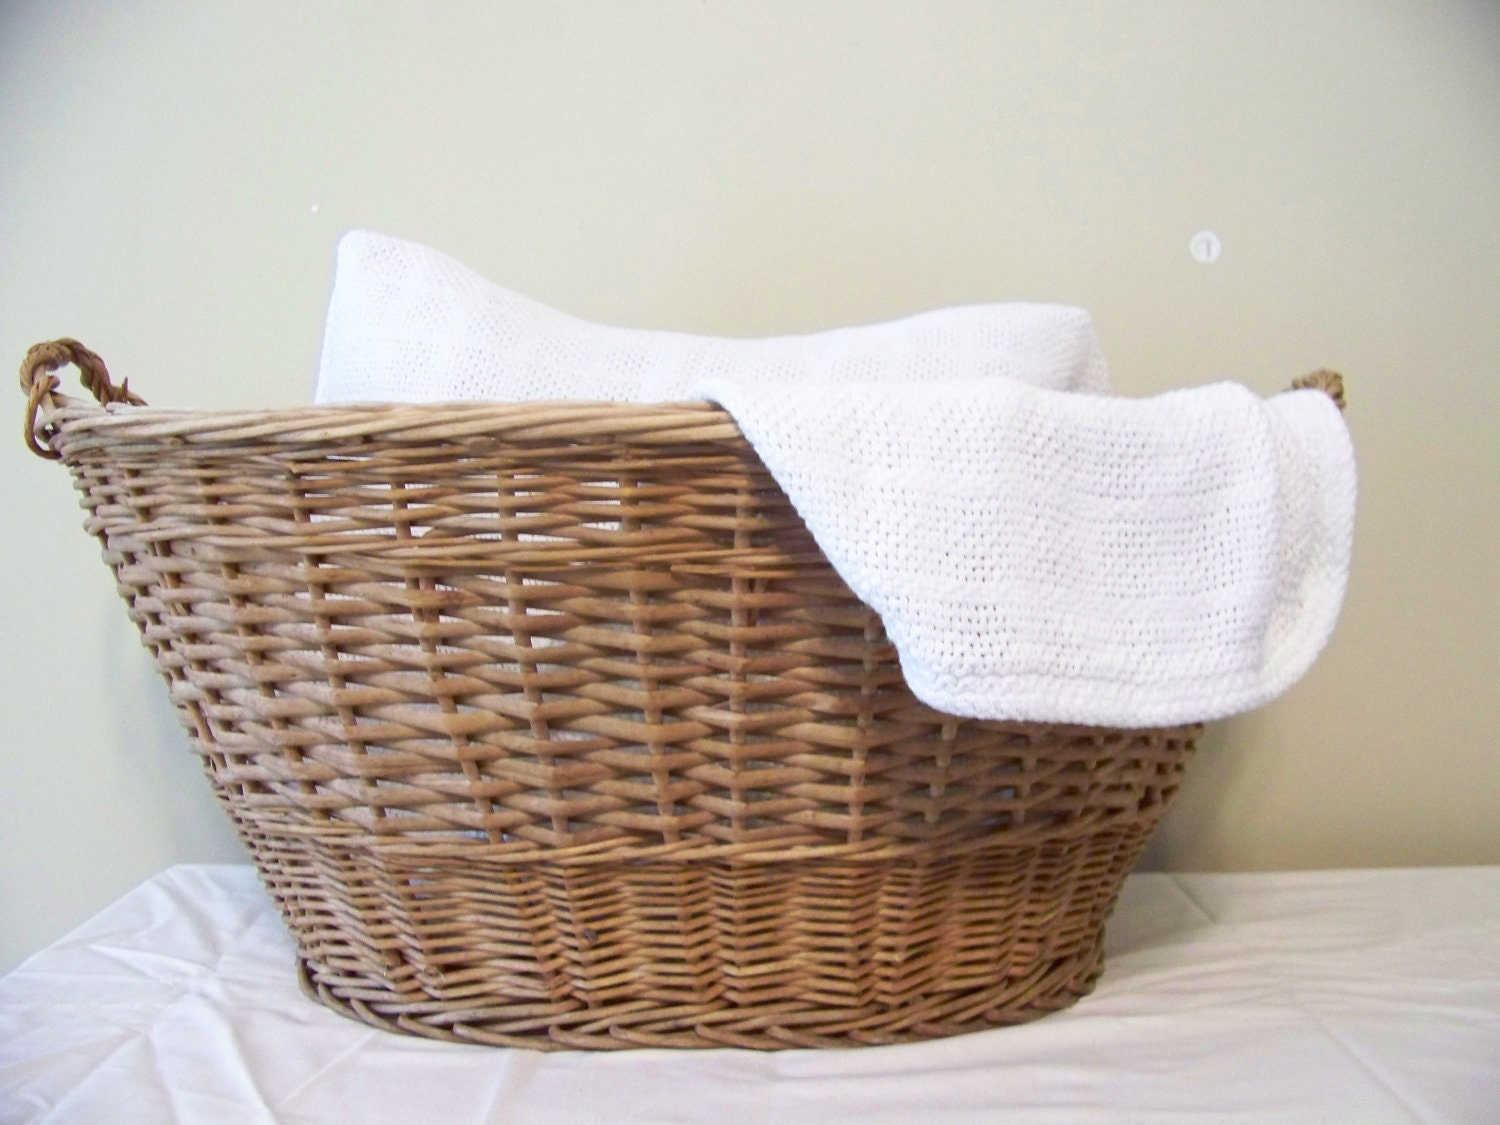 Vintage Wooden Wicker Laundry Basket Farm Fresh Woven